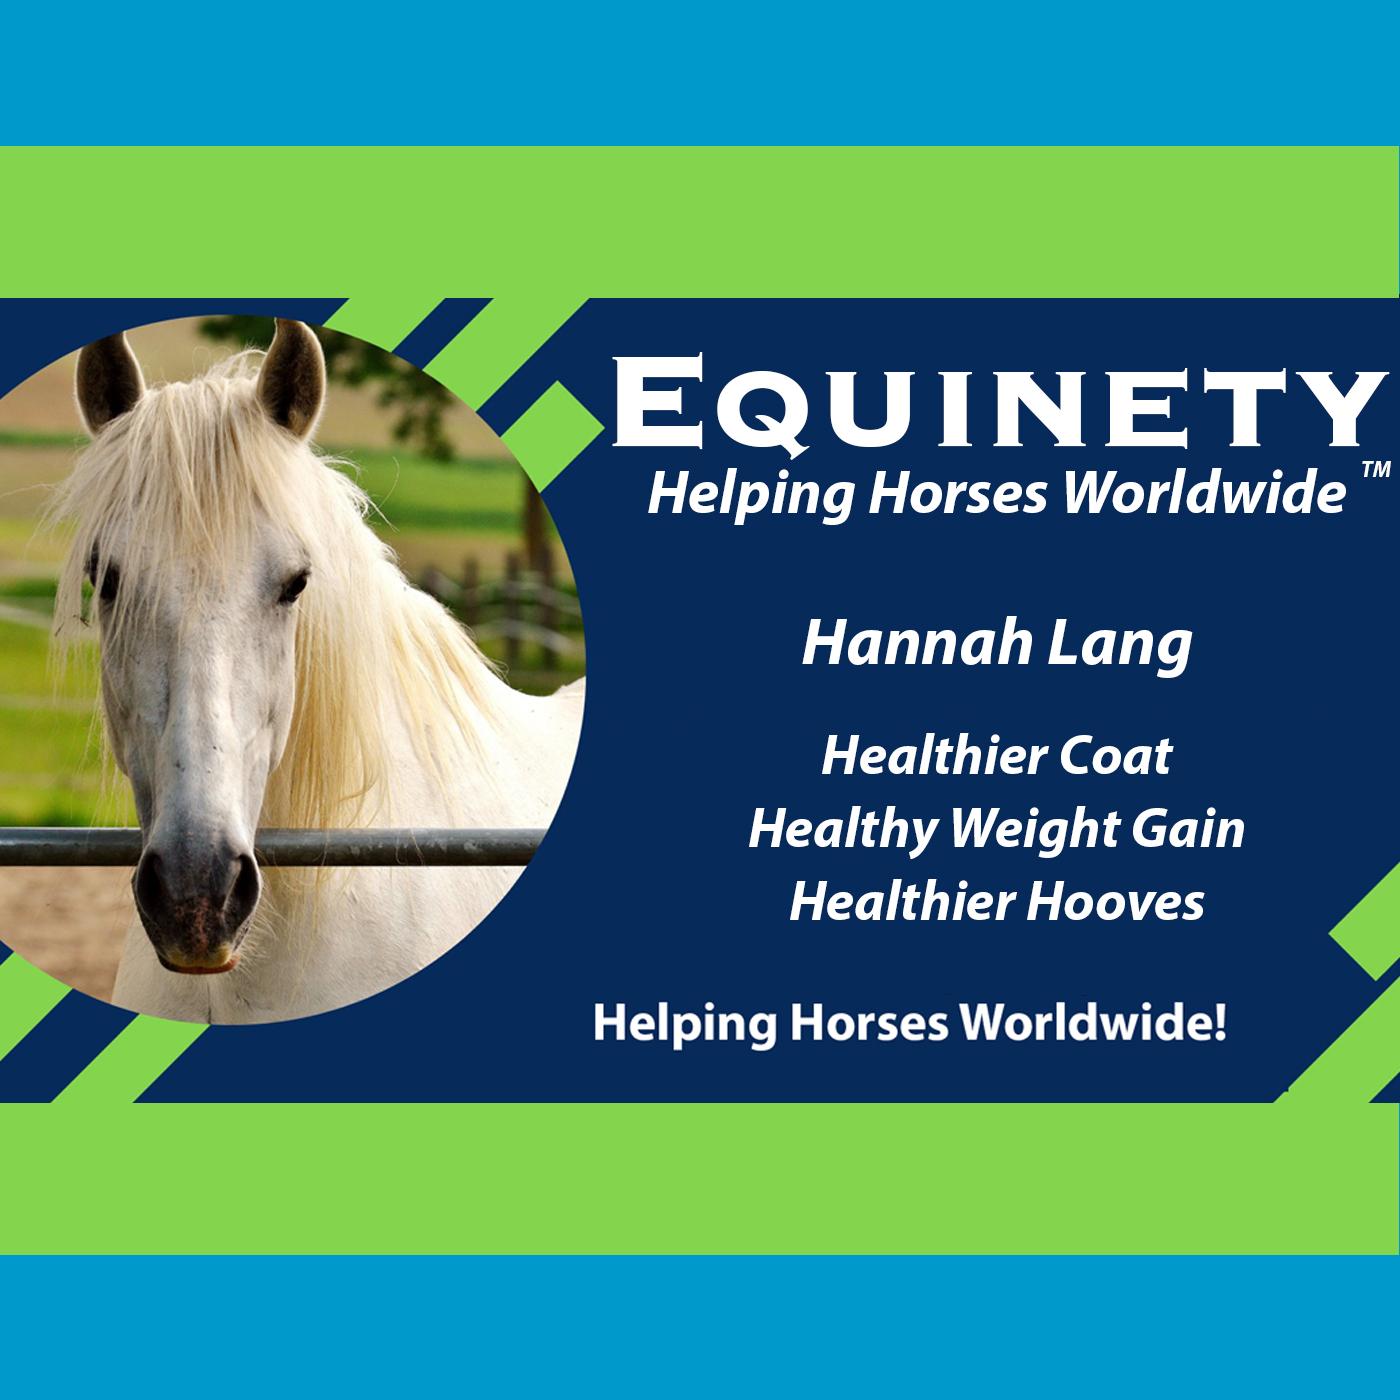 Hannah Lang - Healthier Coat - Healthy Weight Gain - Healthier Hooves